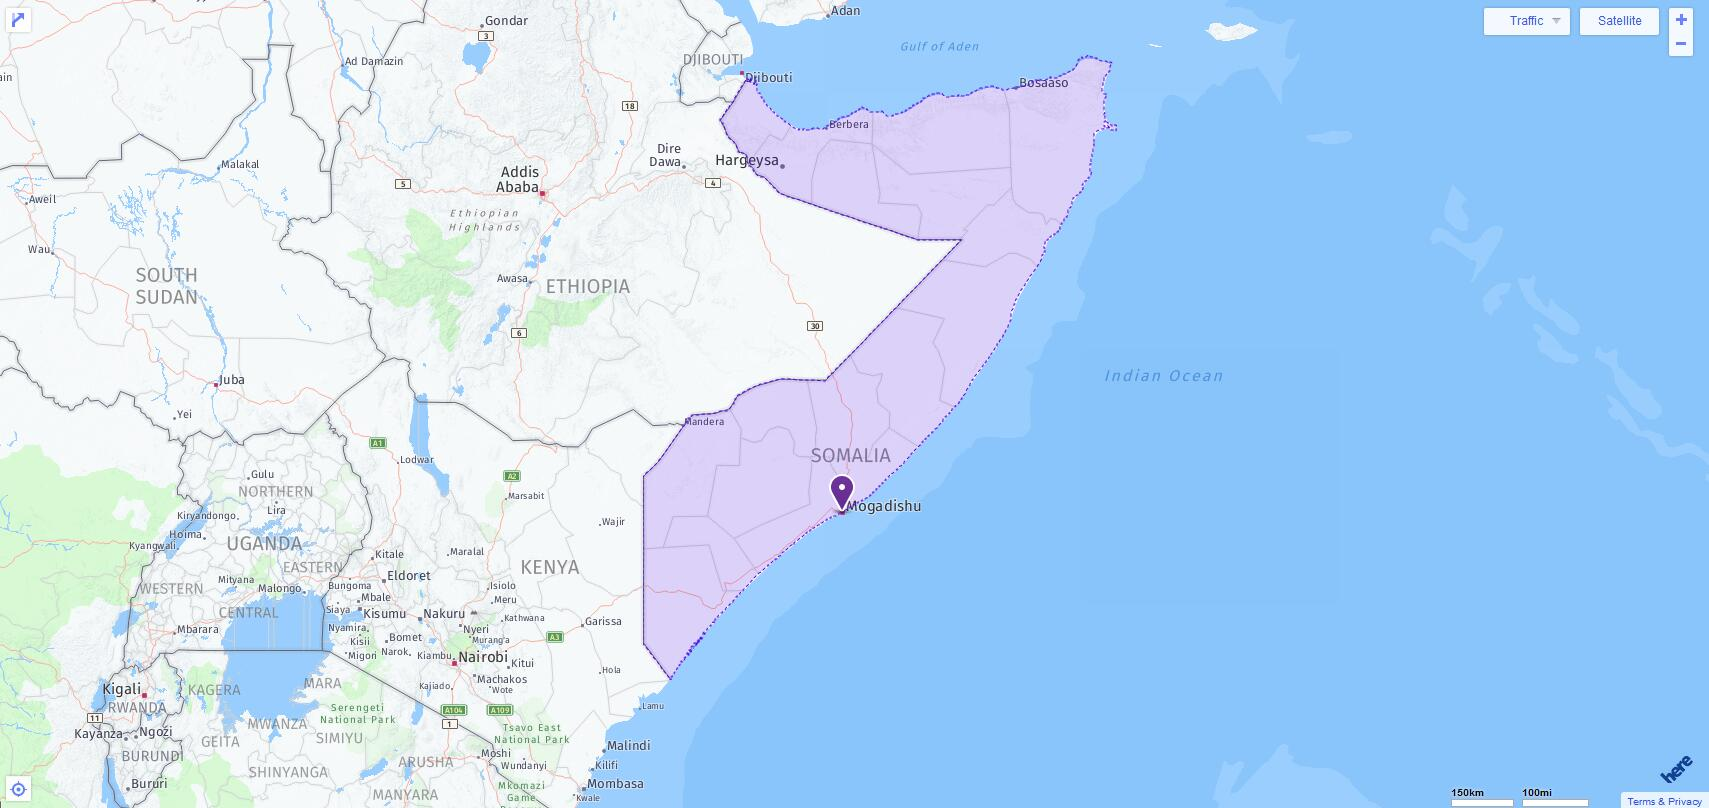 ACT Test Centers and Dates in Somalia